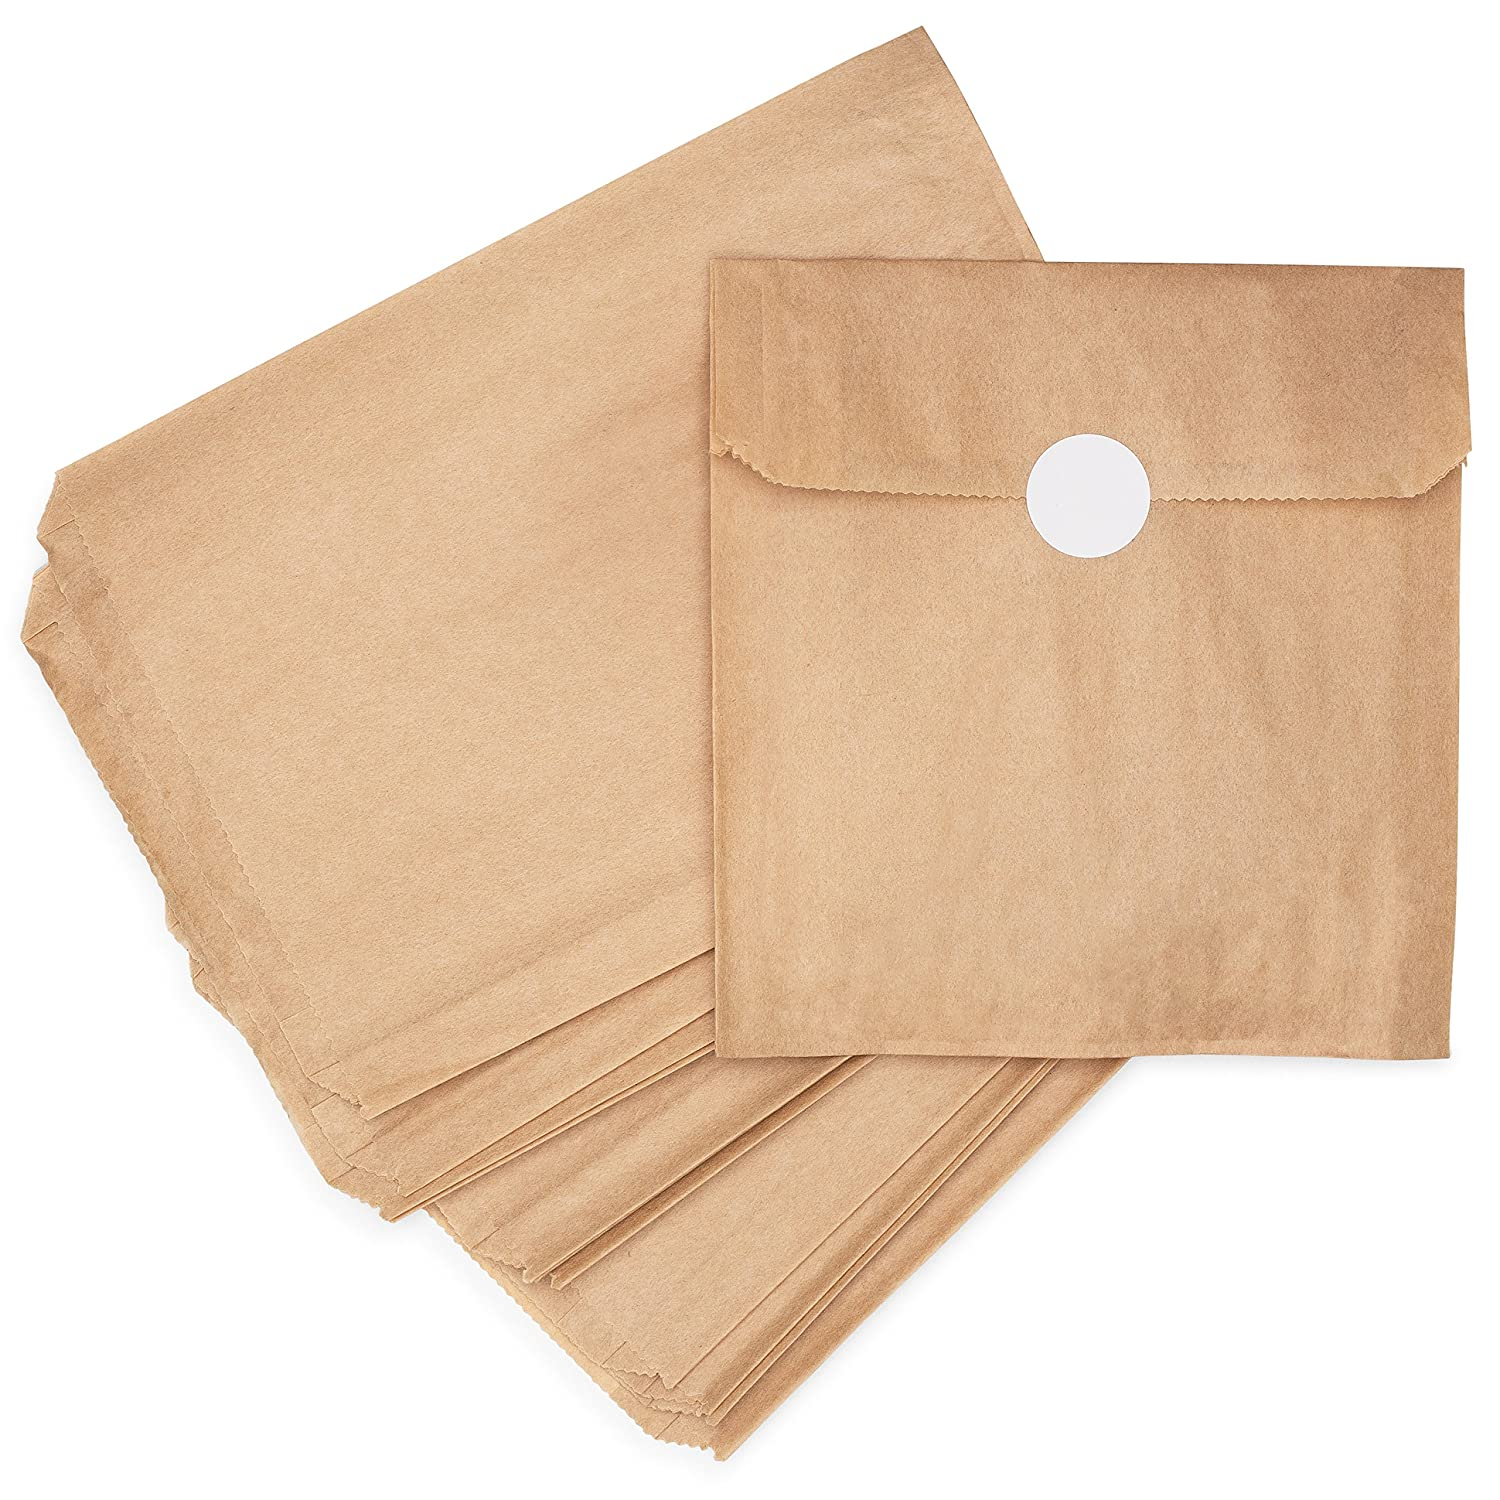 Natural Kraft Brown Paper Snack Sandwich Bags + White Stickers for Sealing. 100% Chlorine-Free, Unbleached, Eco Alternative to Plastic Fold ...